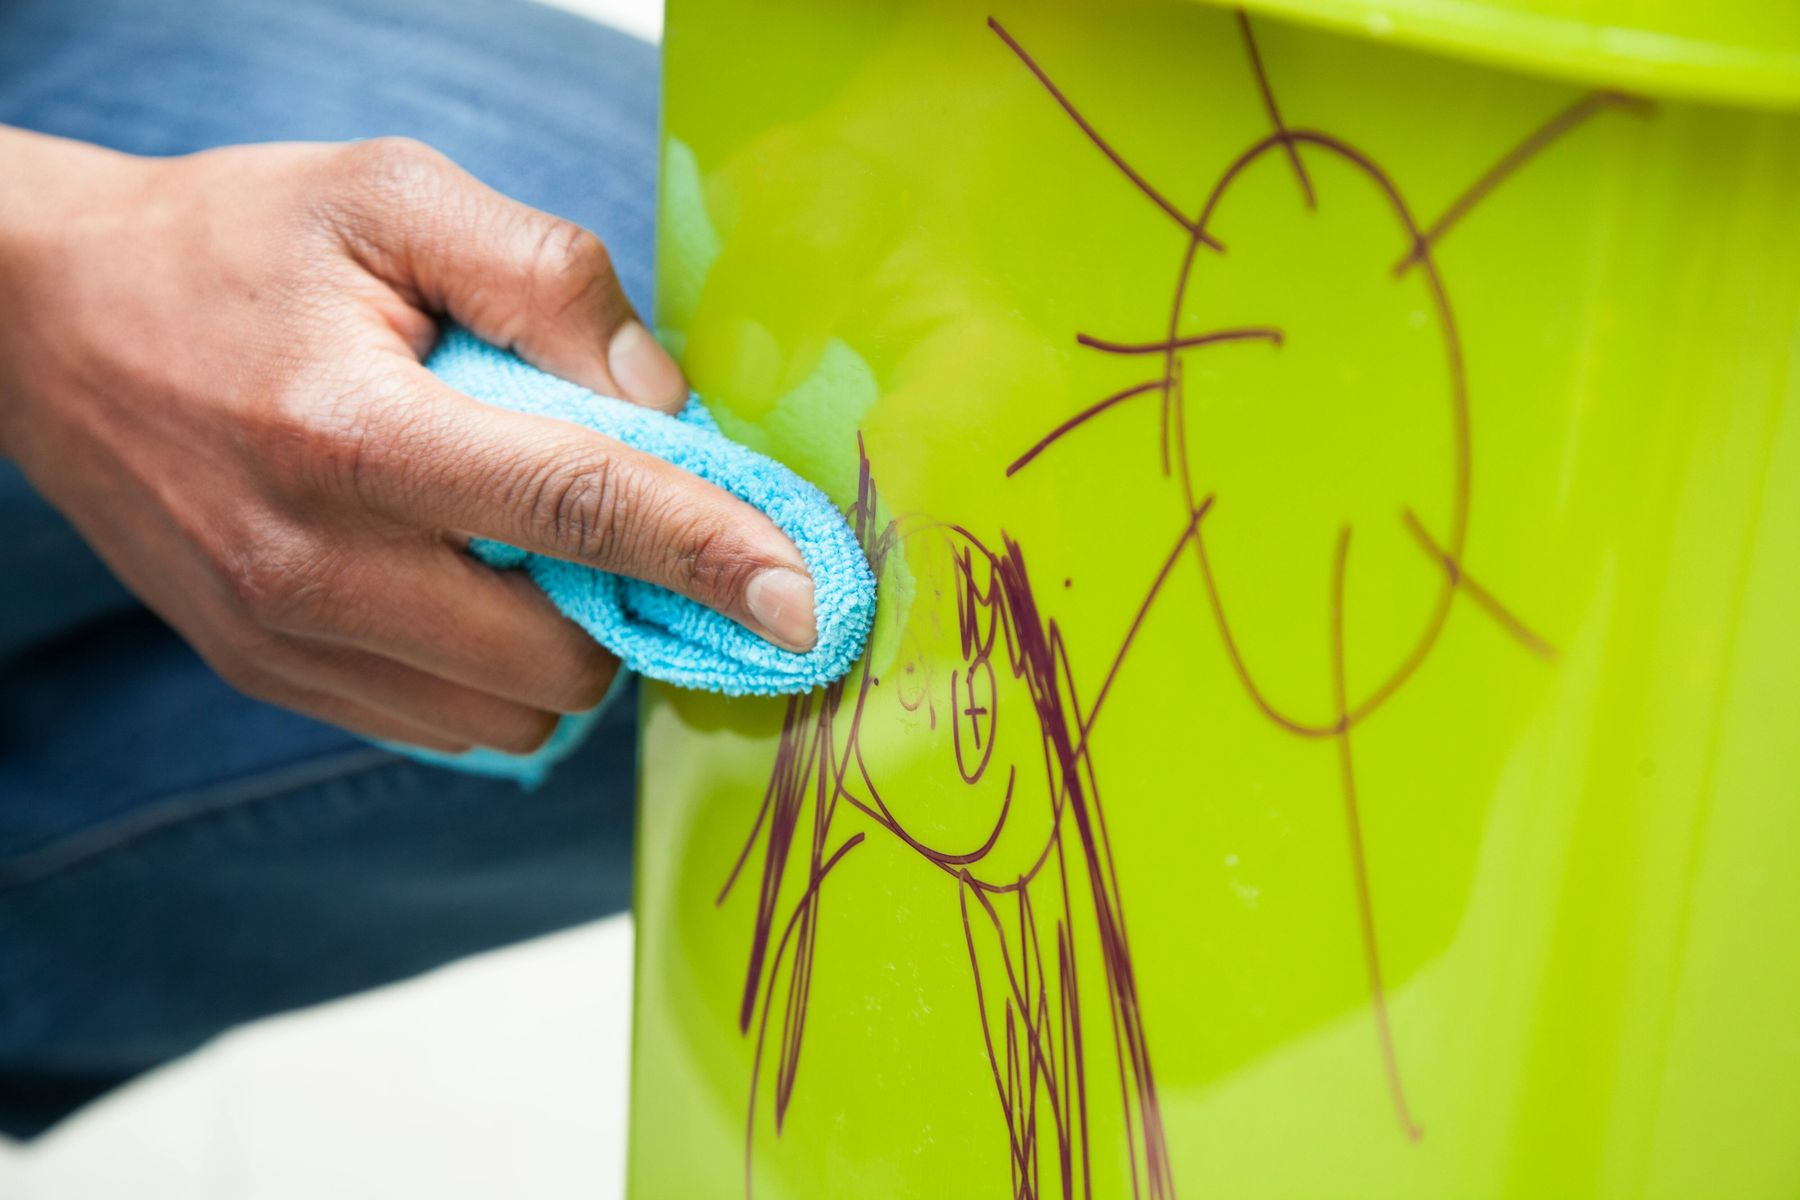 removing permanent marker from plastic